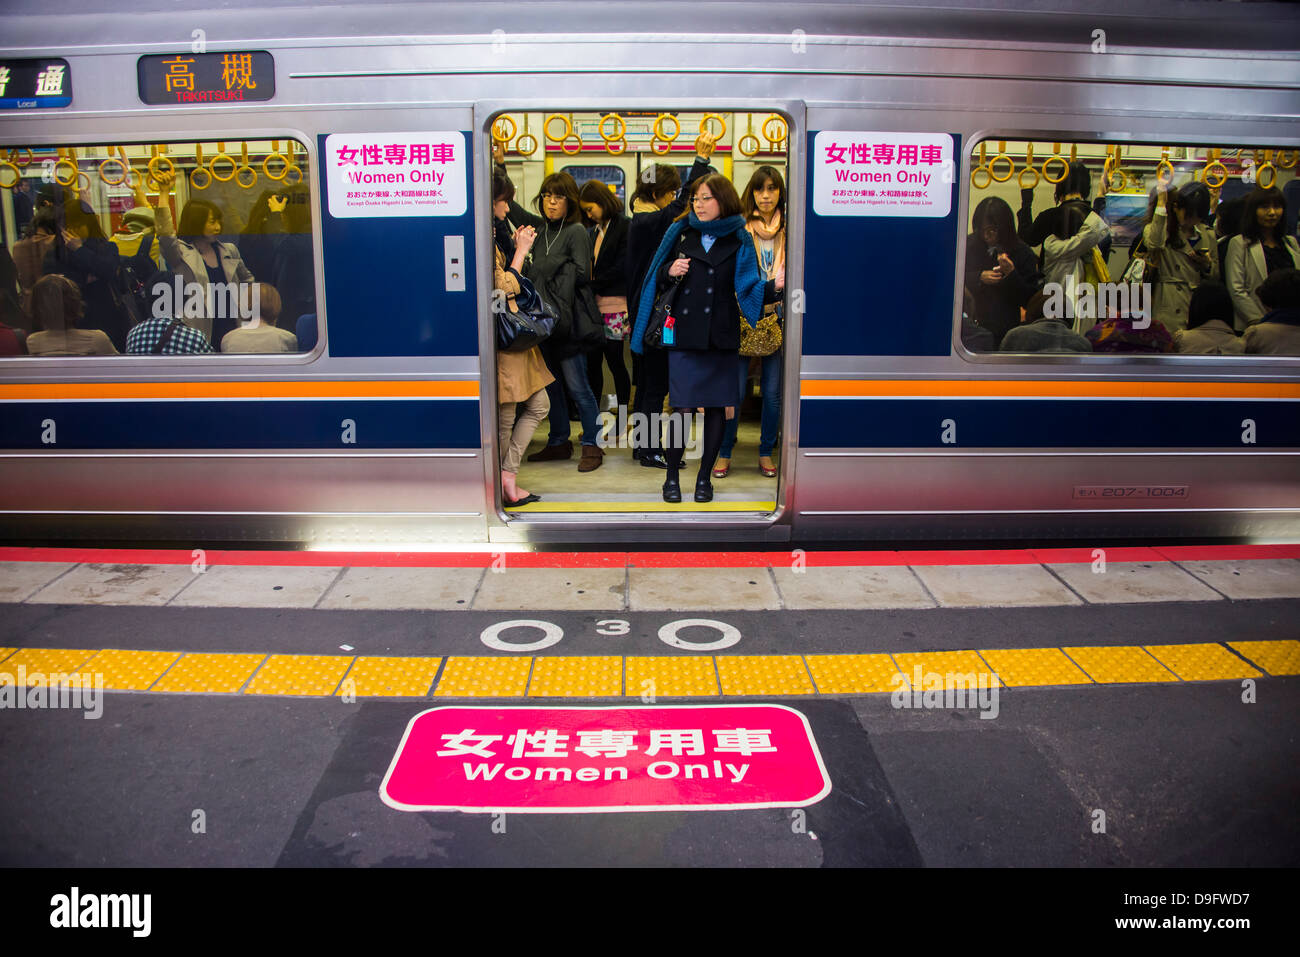 Special women's compartment on the train in Kyoto, Japan - Stock Image